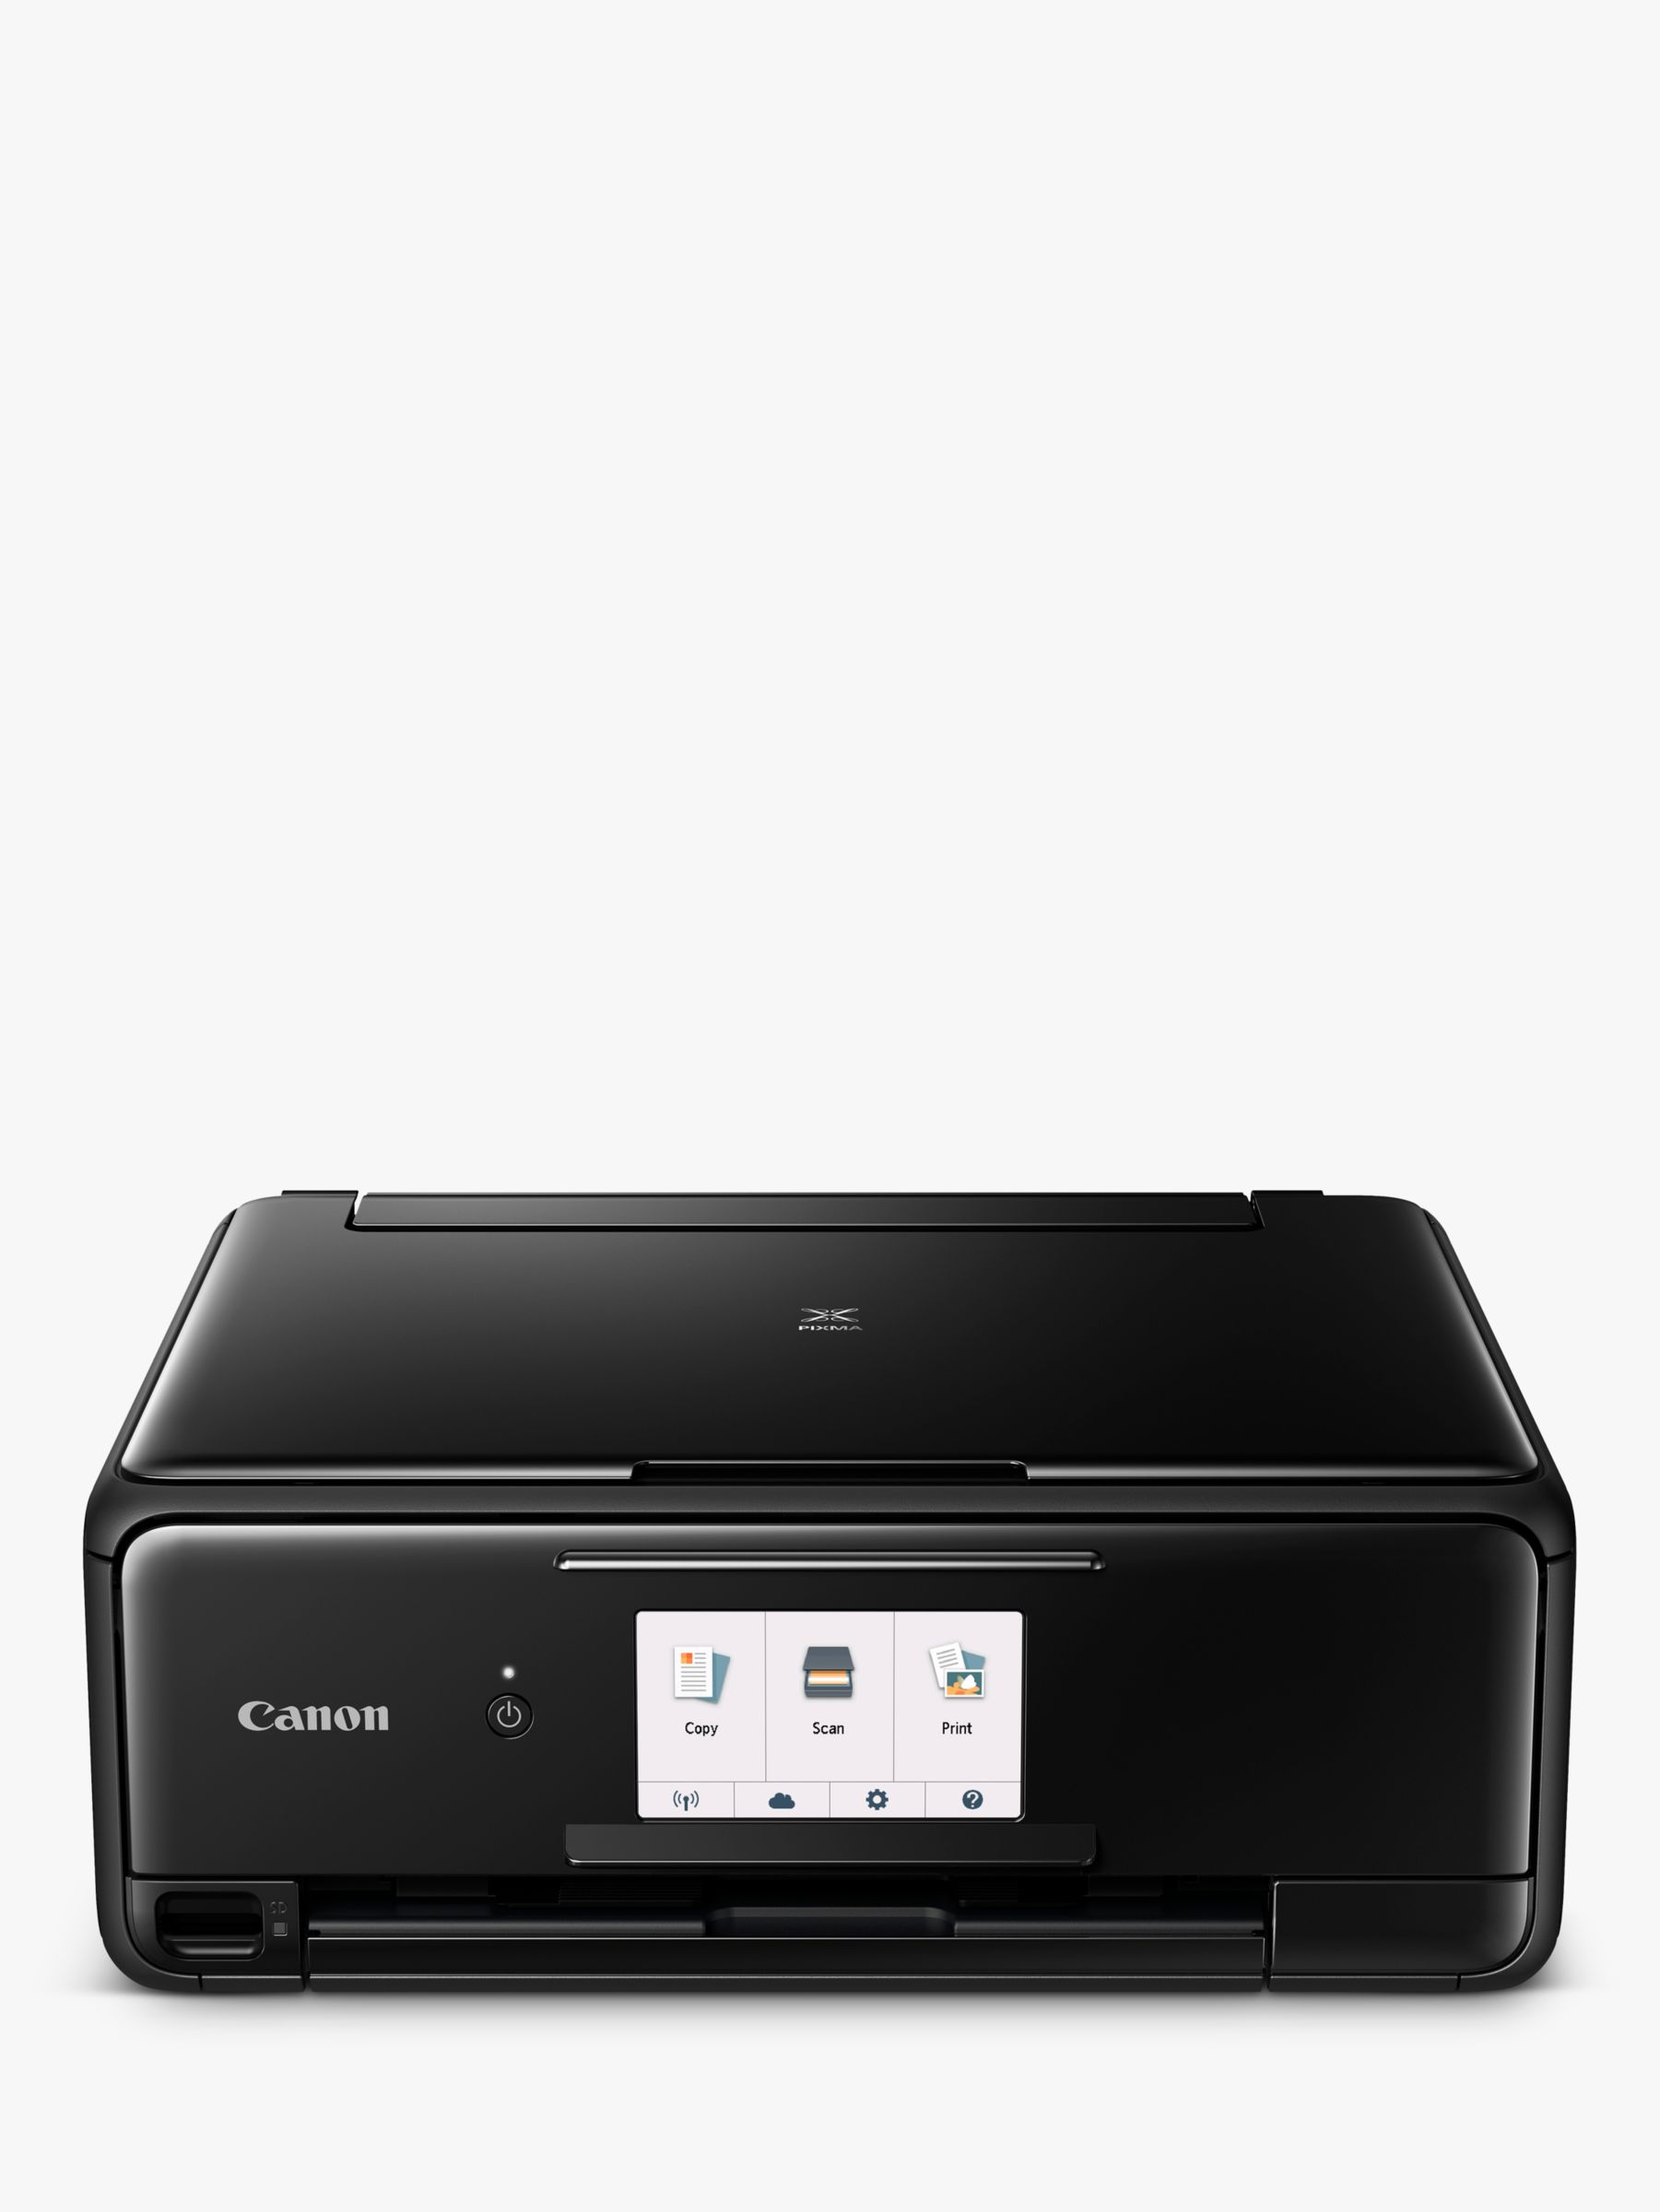 Canon PIXMA TS8150 All-in-One Wireless Wi-Fi Printer with Auto-Tilting  Touch Screen, Black